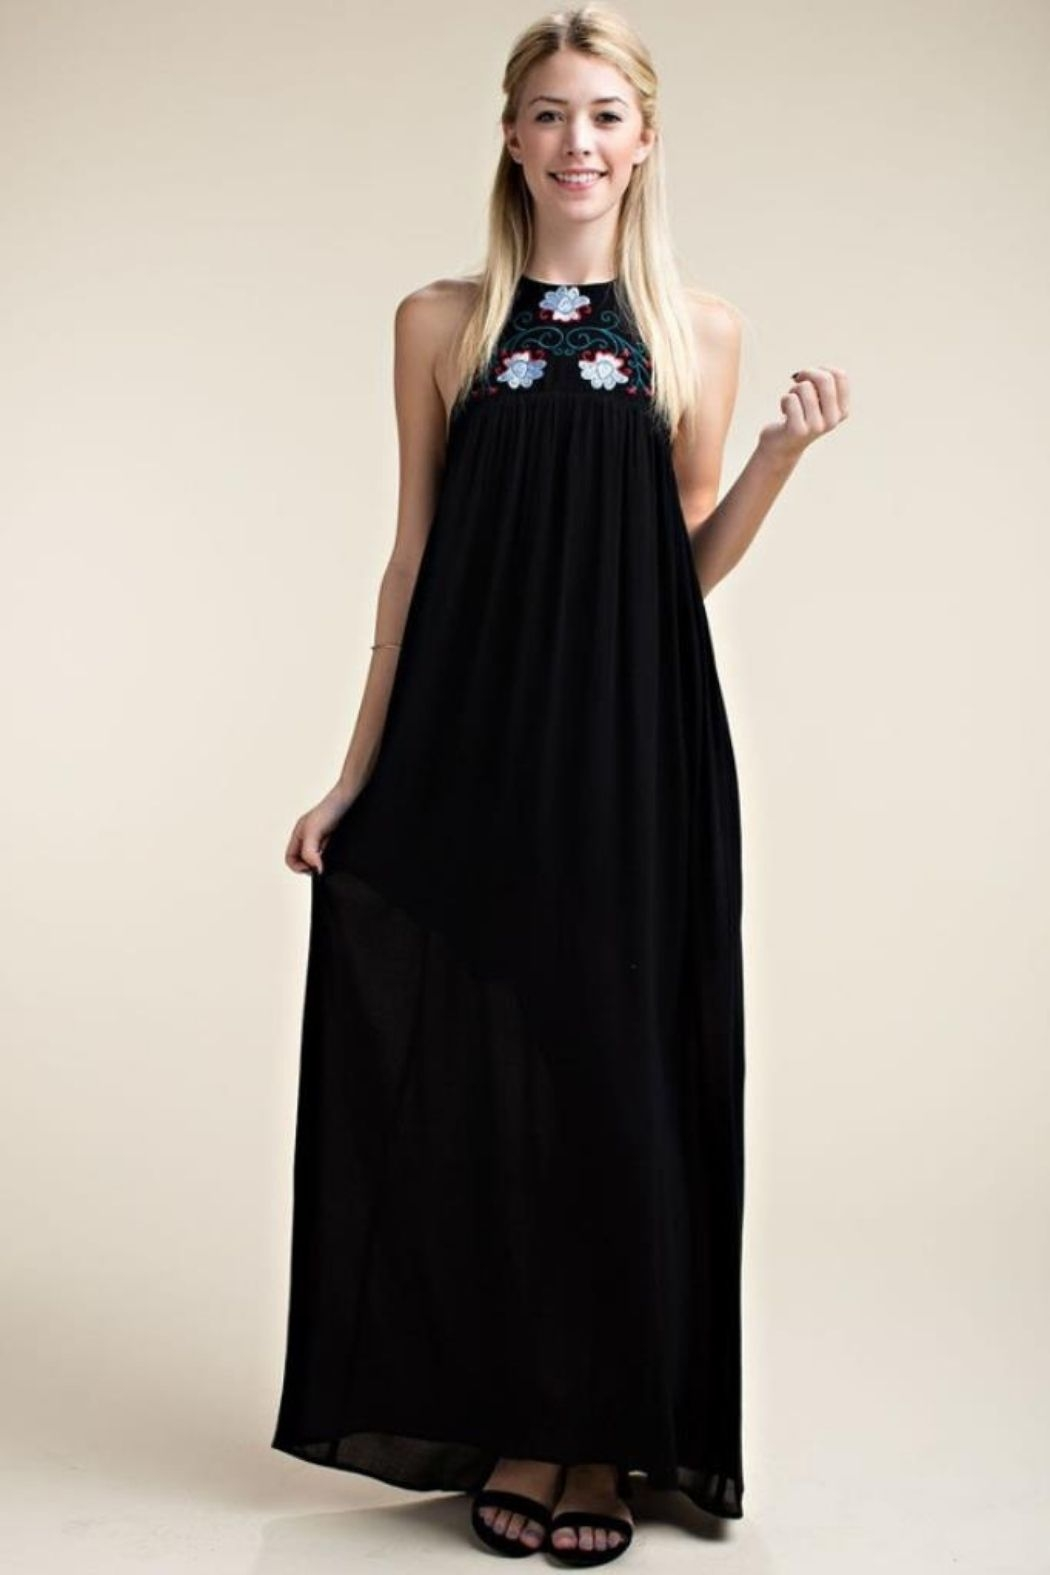 Cali Urbn Taupe Embroidered Halter Neck Maxi (Shown in Black) - Main Image